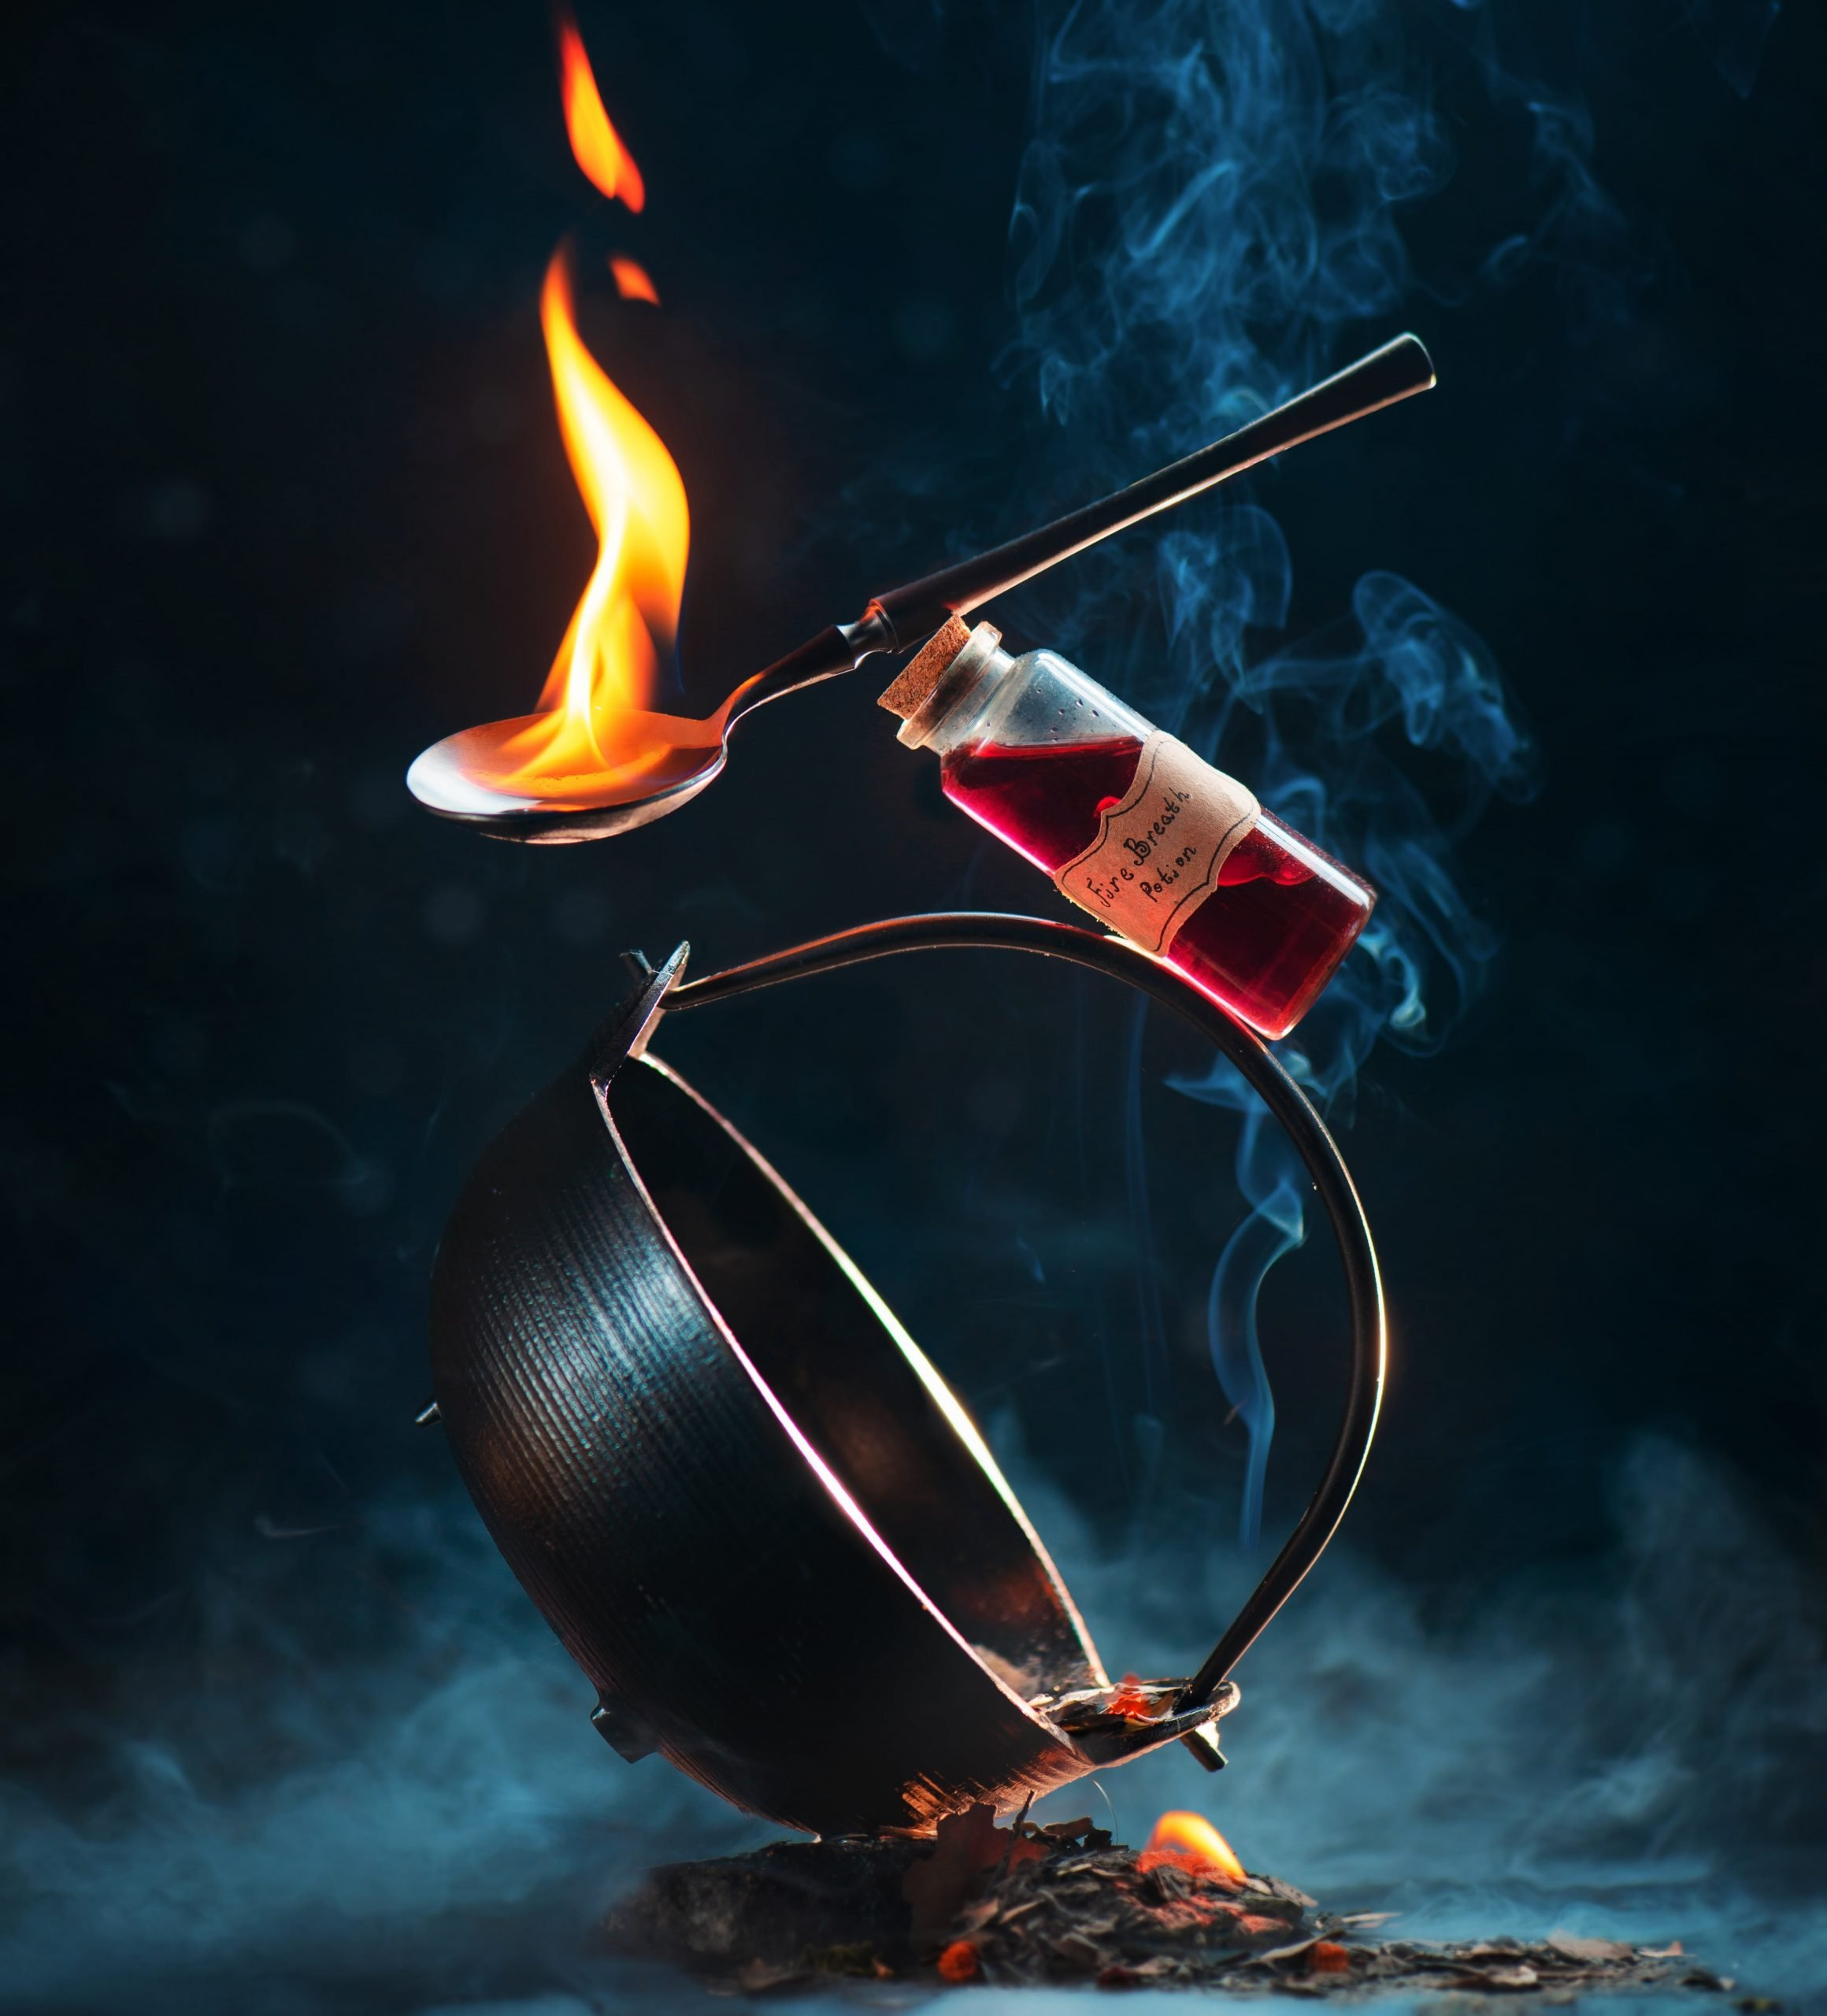 An image of a caludron and fire sybolizing balance.